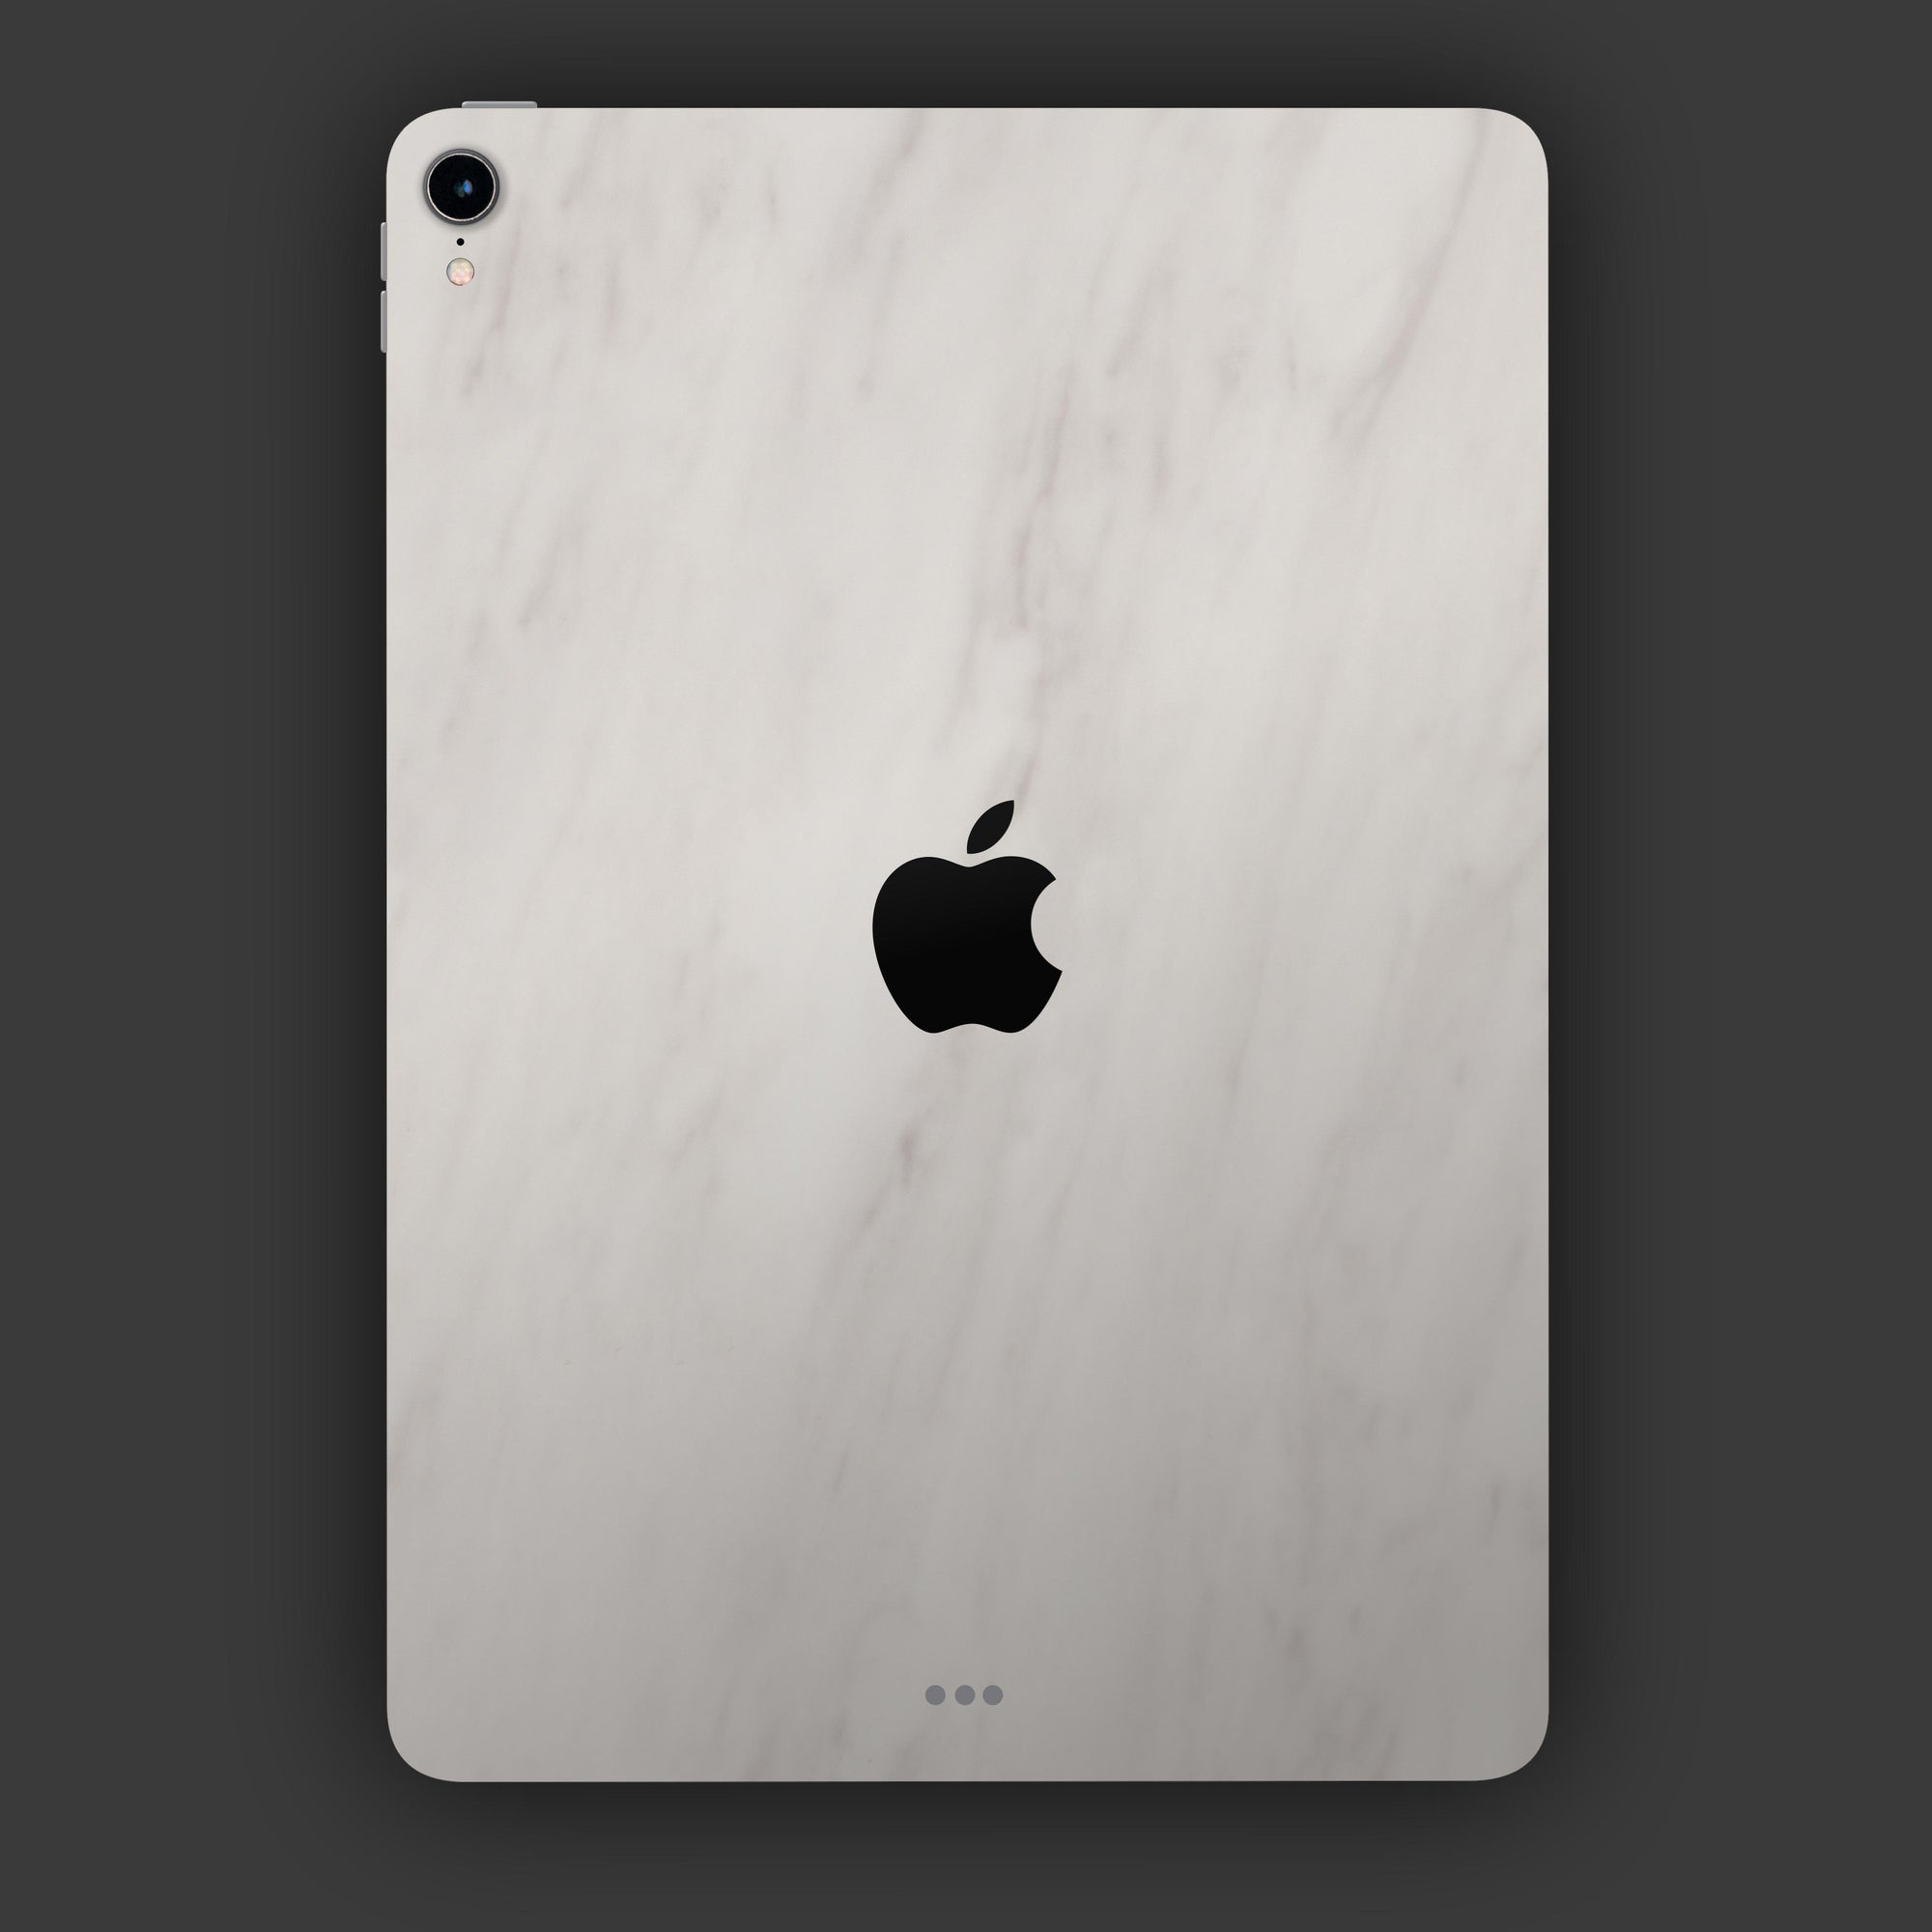 iPad-Pro-12-9-2018-mit-Apple-Logo-in-Marmor